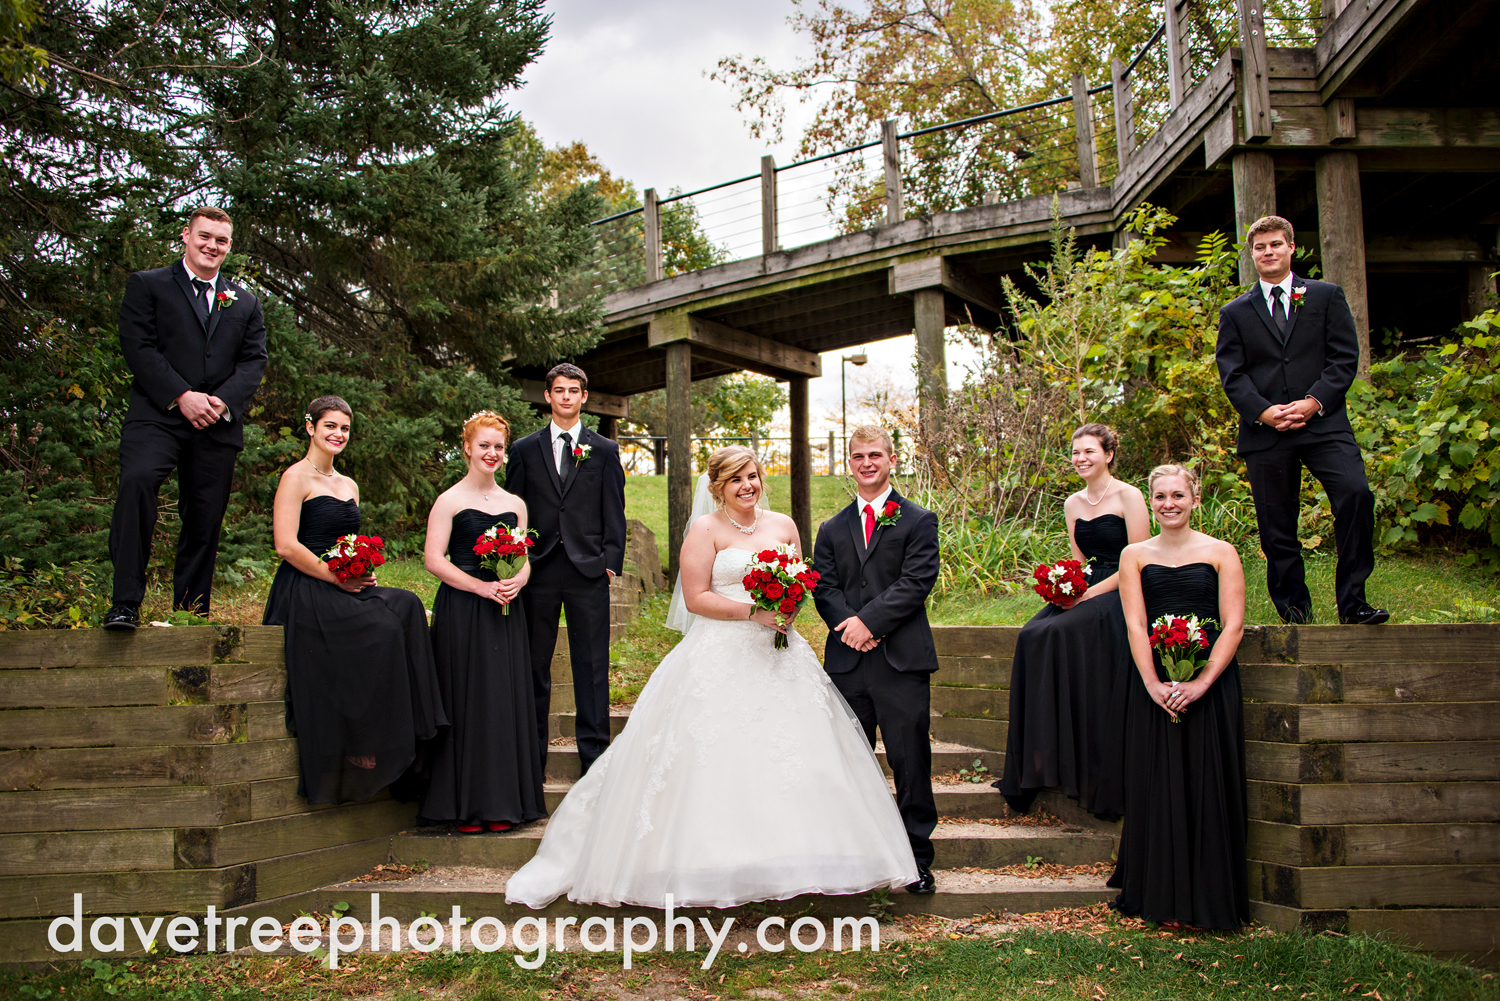 holland_wedding_photographer_60.jpg